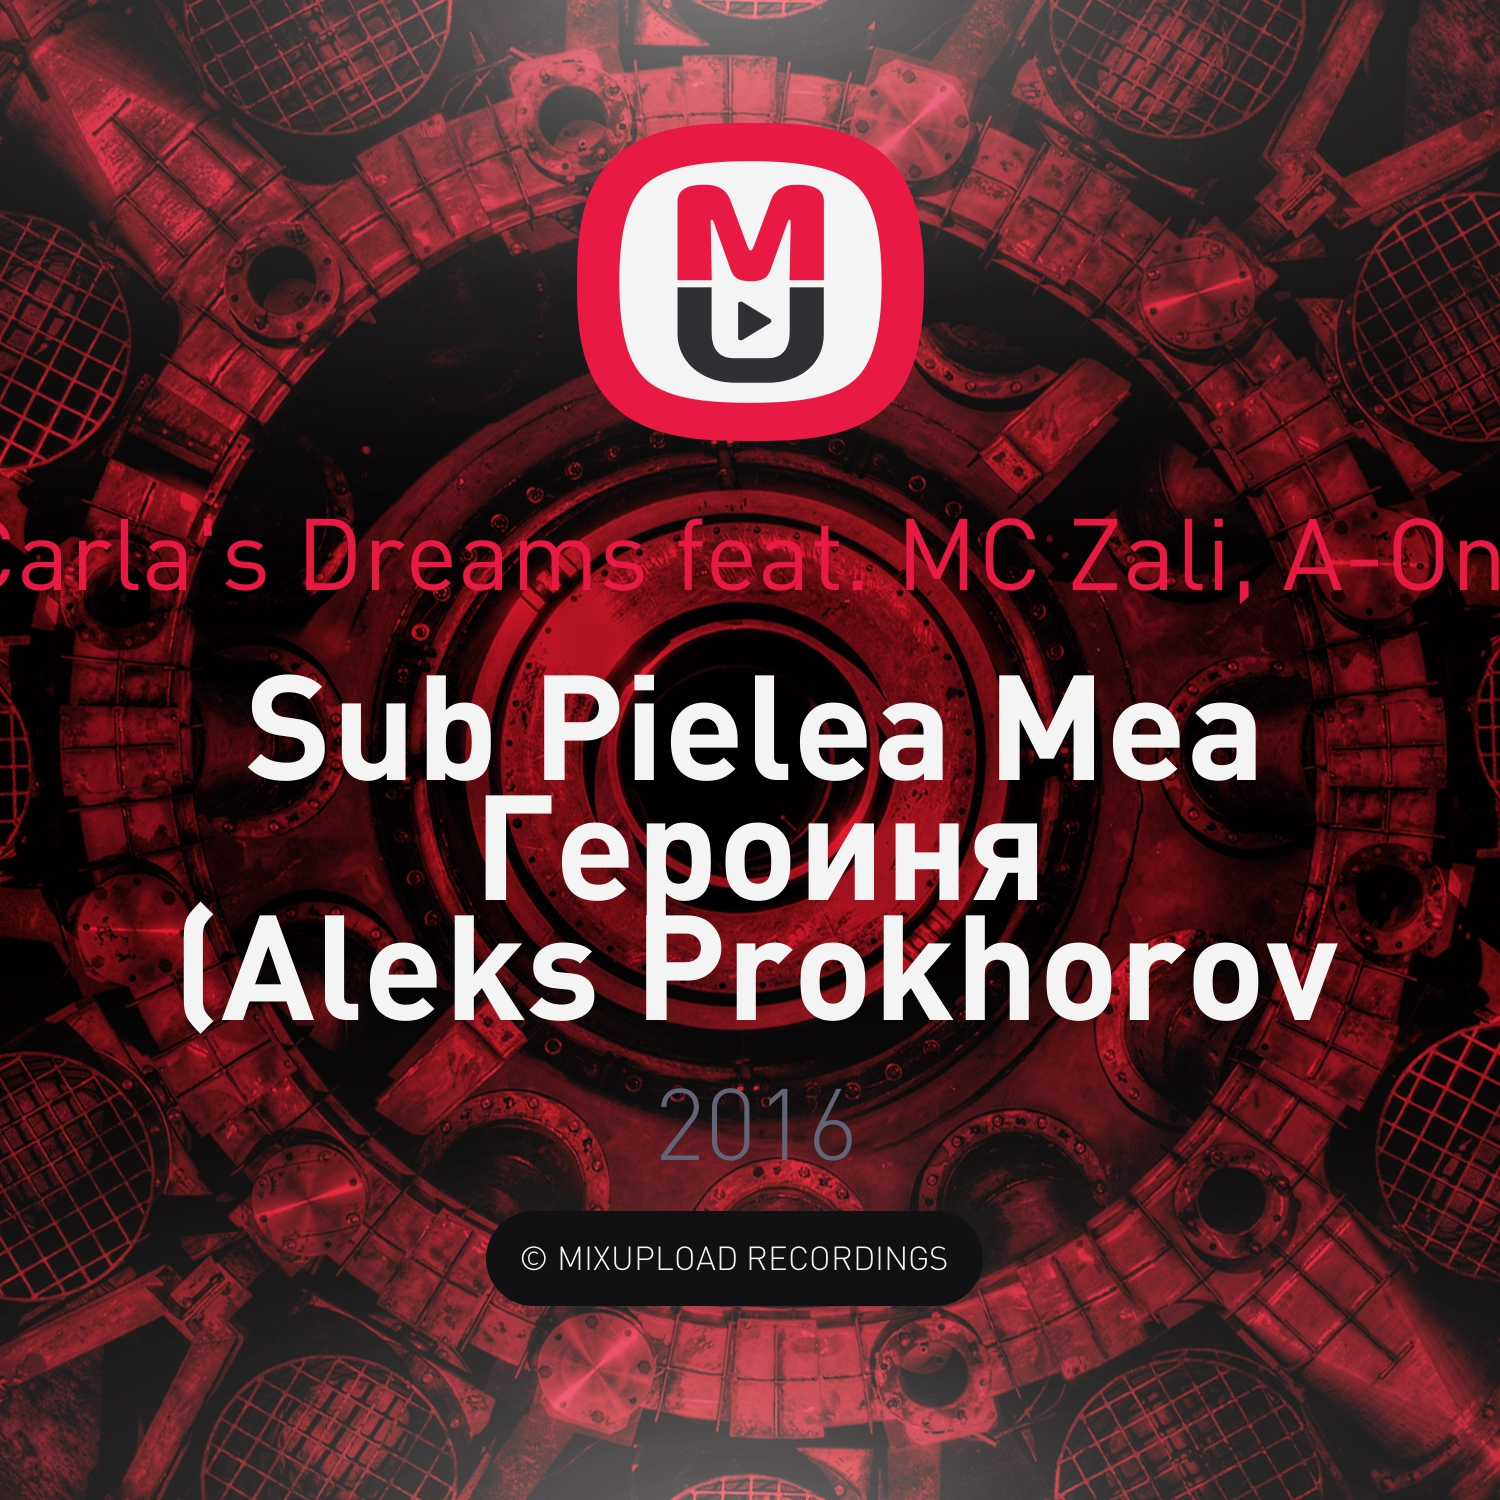 Carla\'s Dreams feat. MC Zali, A-One - Sub Pielea Mea Героиня (Aleks Prokhorov mix)